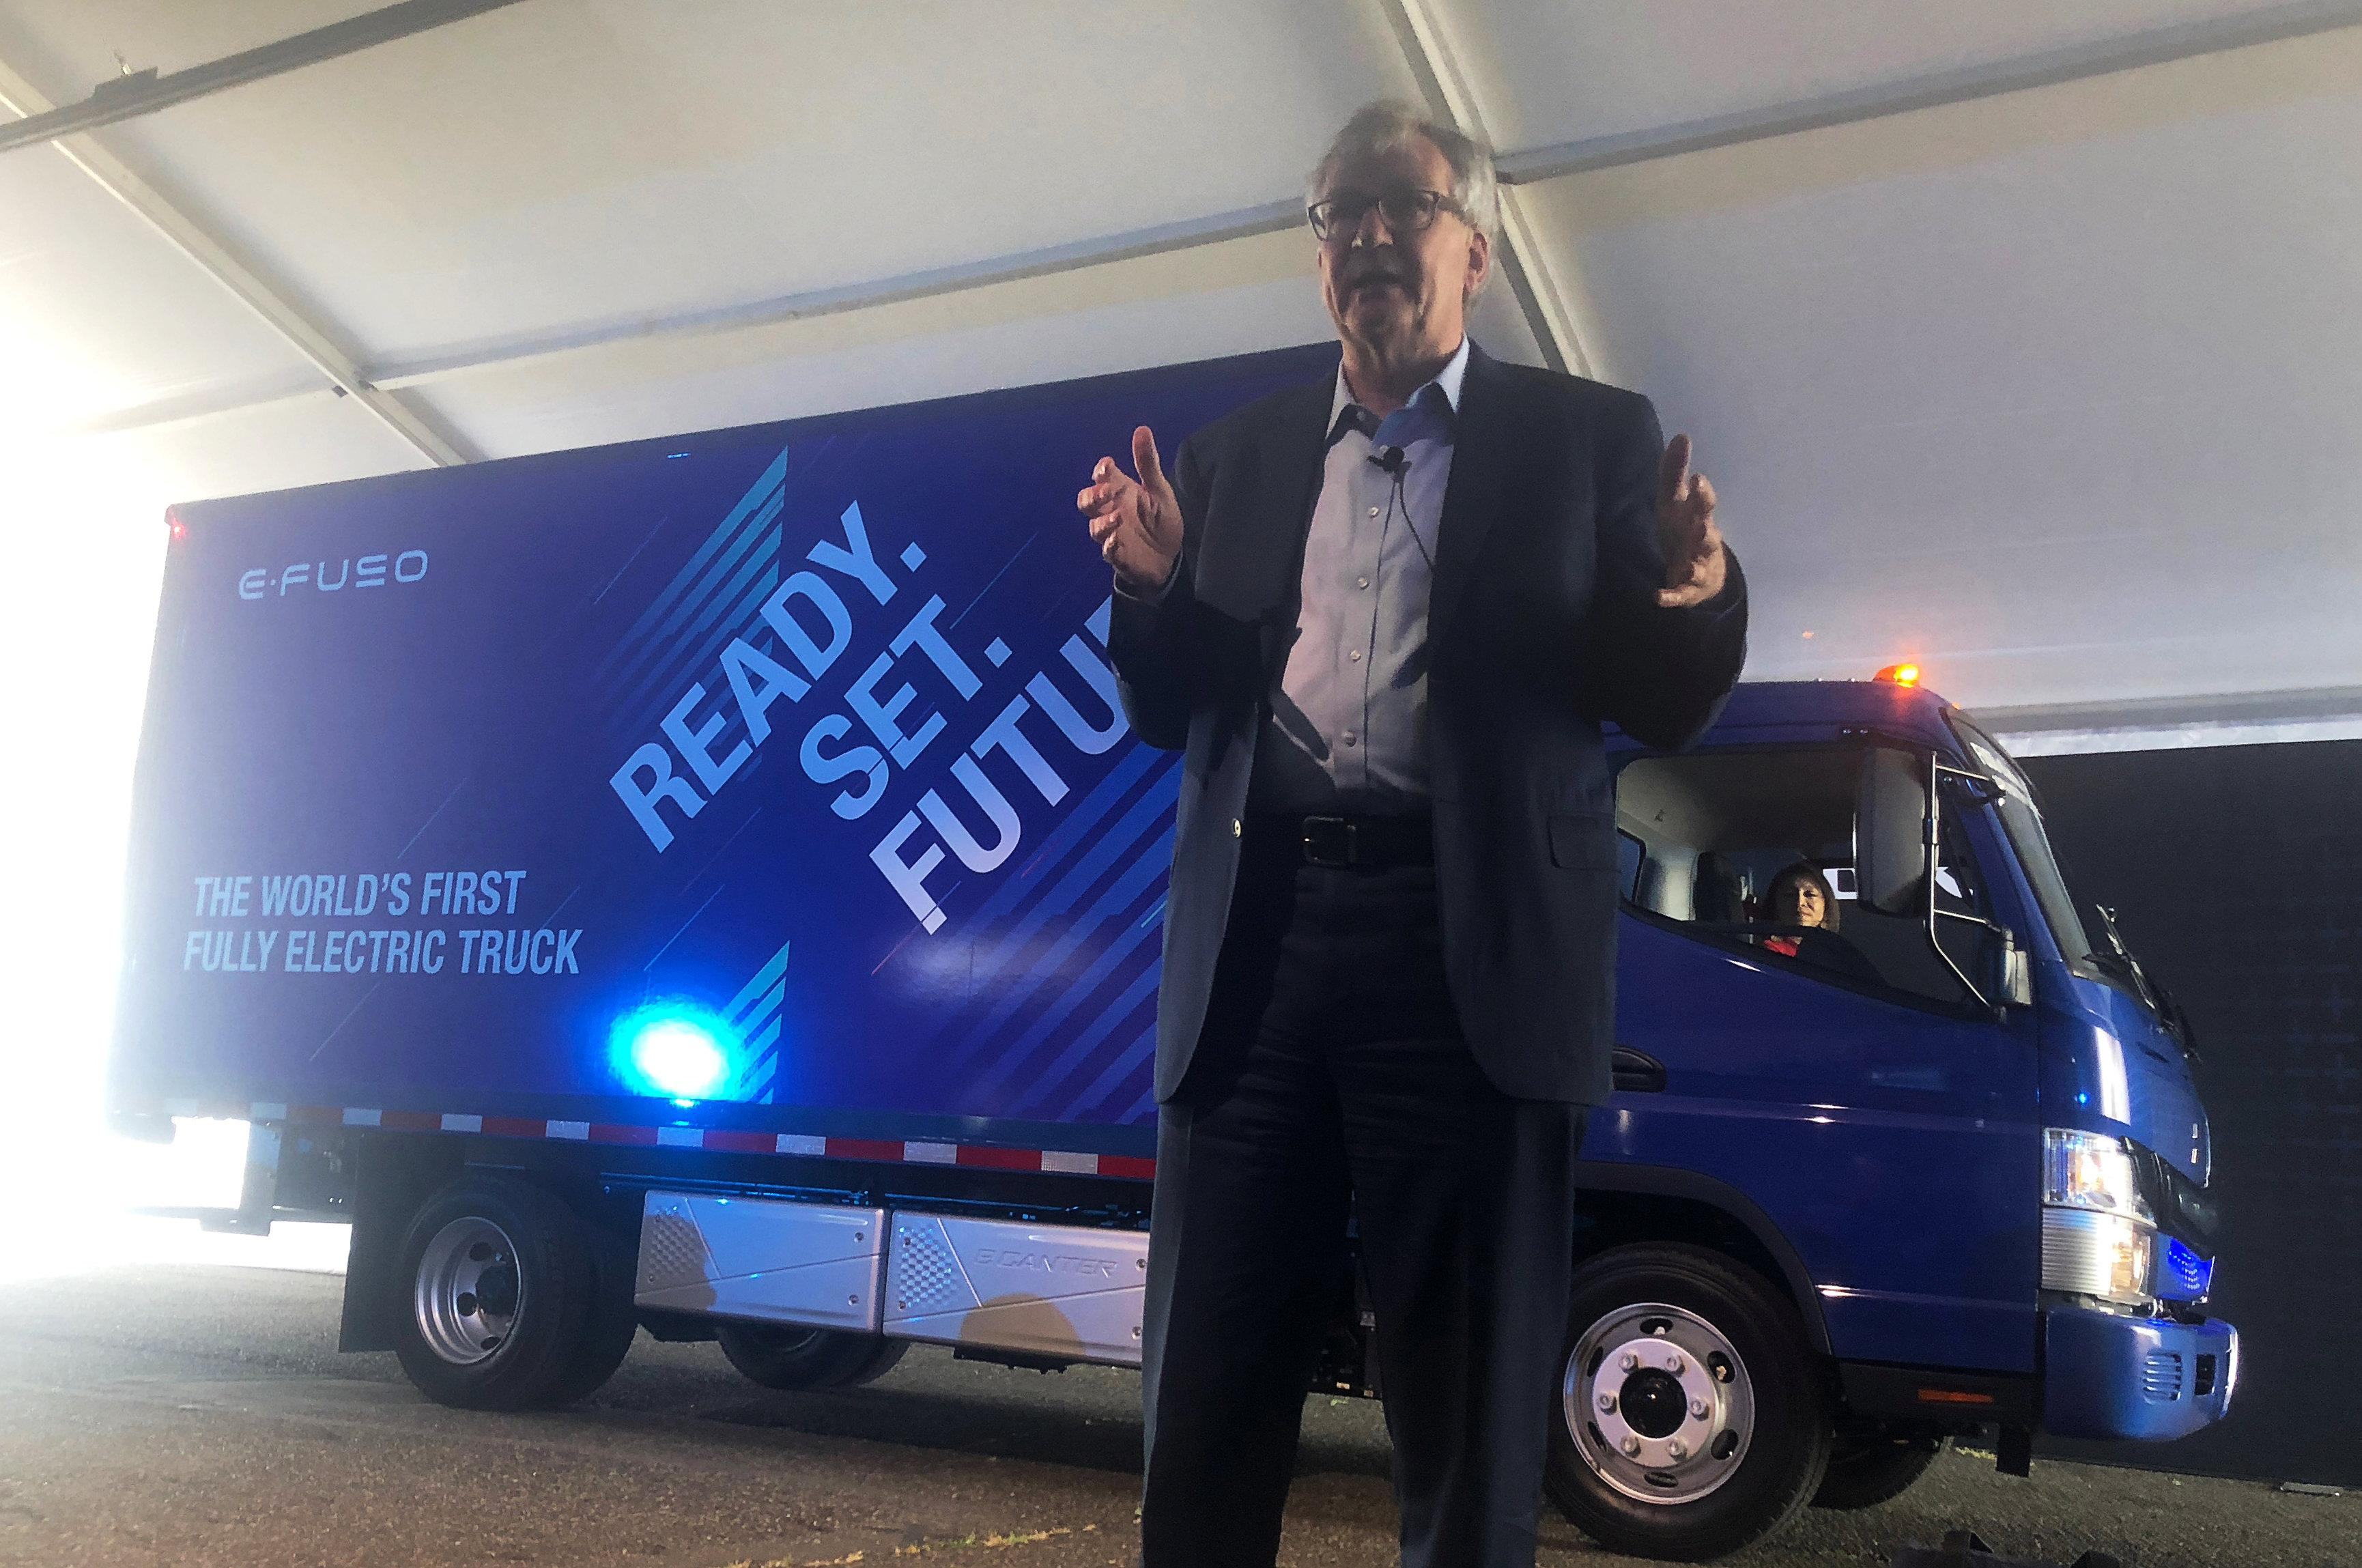 Martin Baum Head Of Daimler Trucks And The Buses Divisions Speaks At An Investors Event Portland International Raceway In Oregon